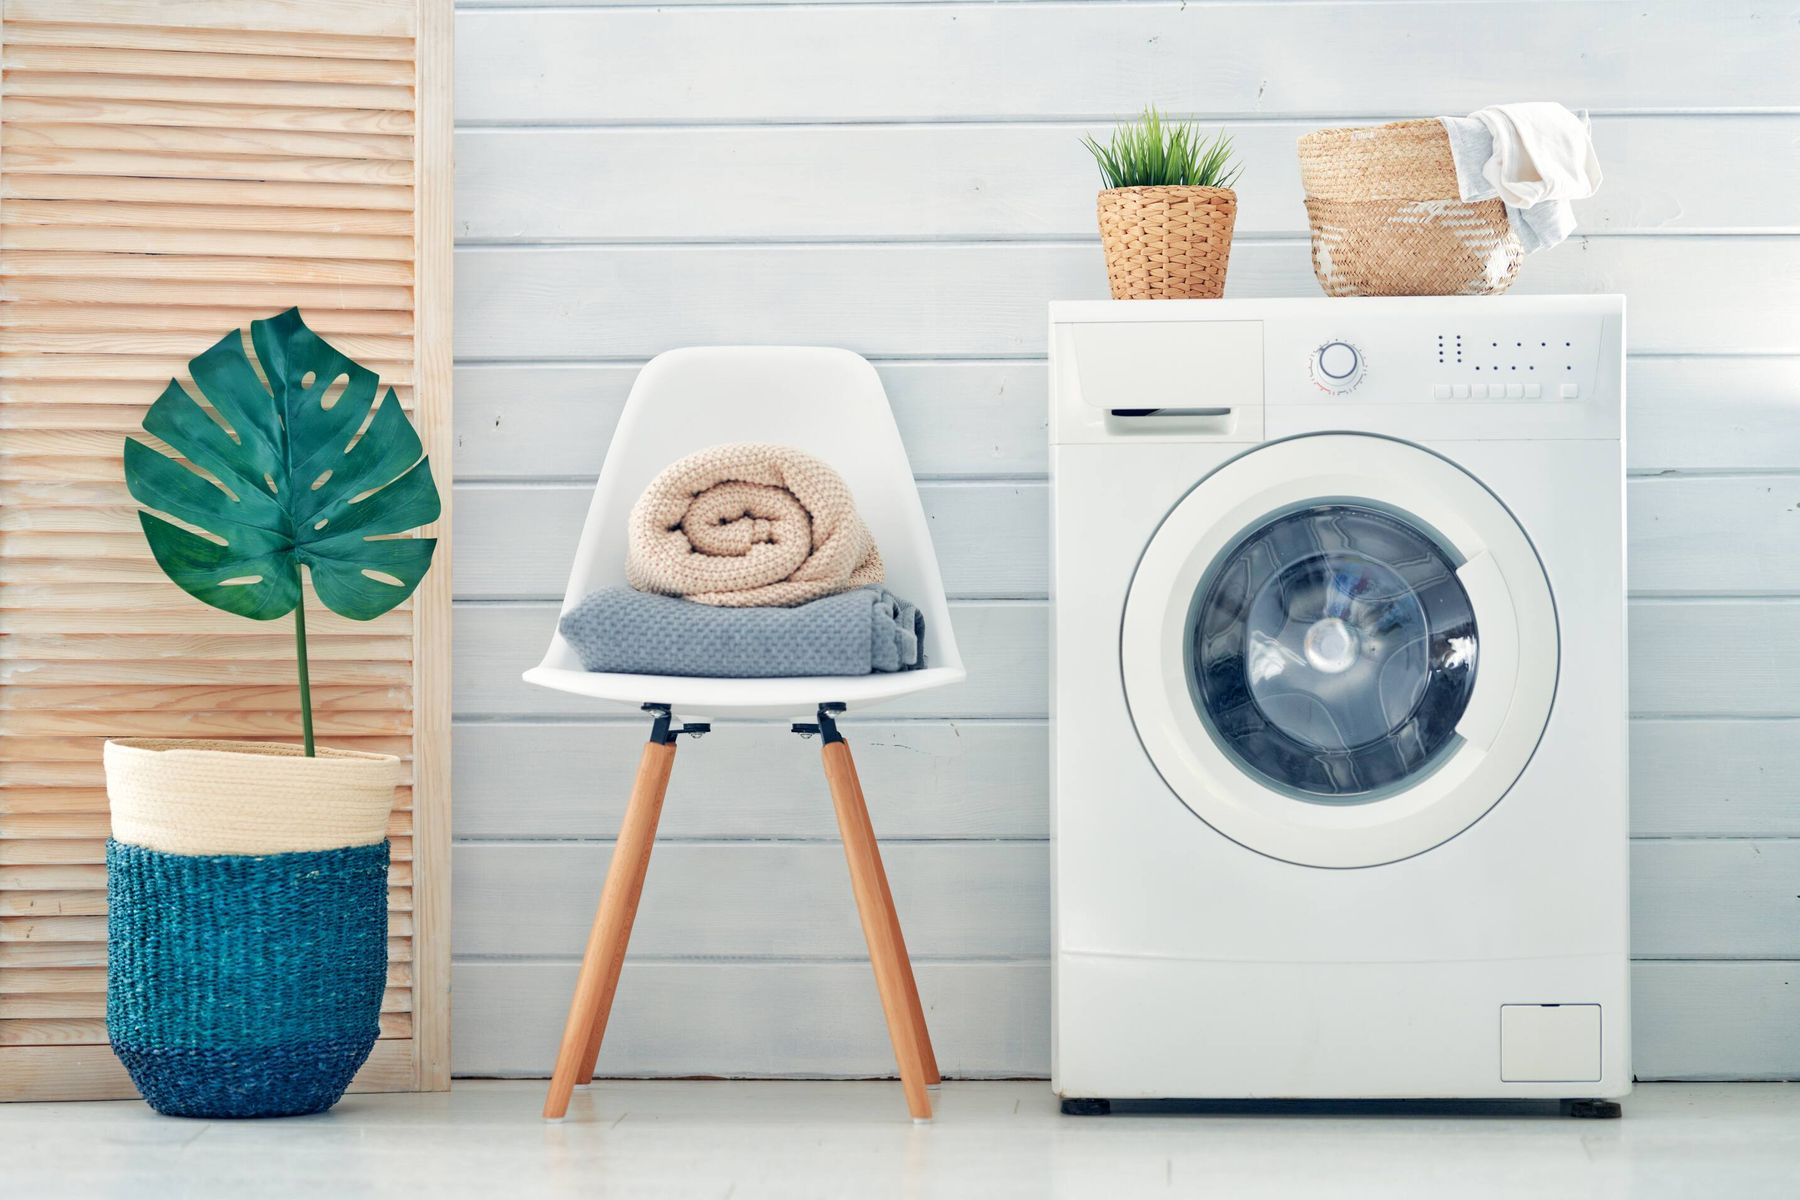 Own a Semi-Automatic but want smarter features? Consider an automatic washing machine